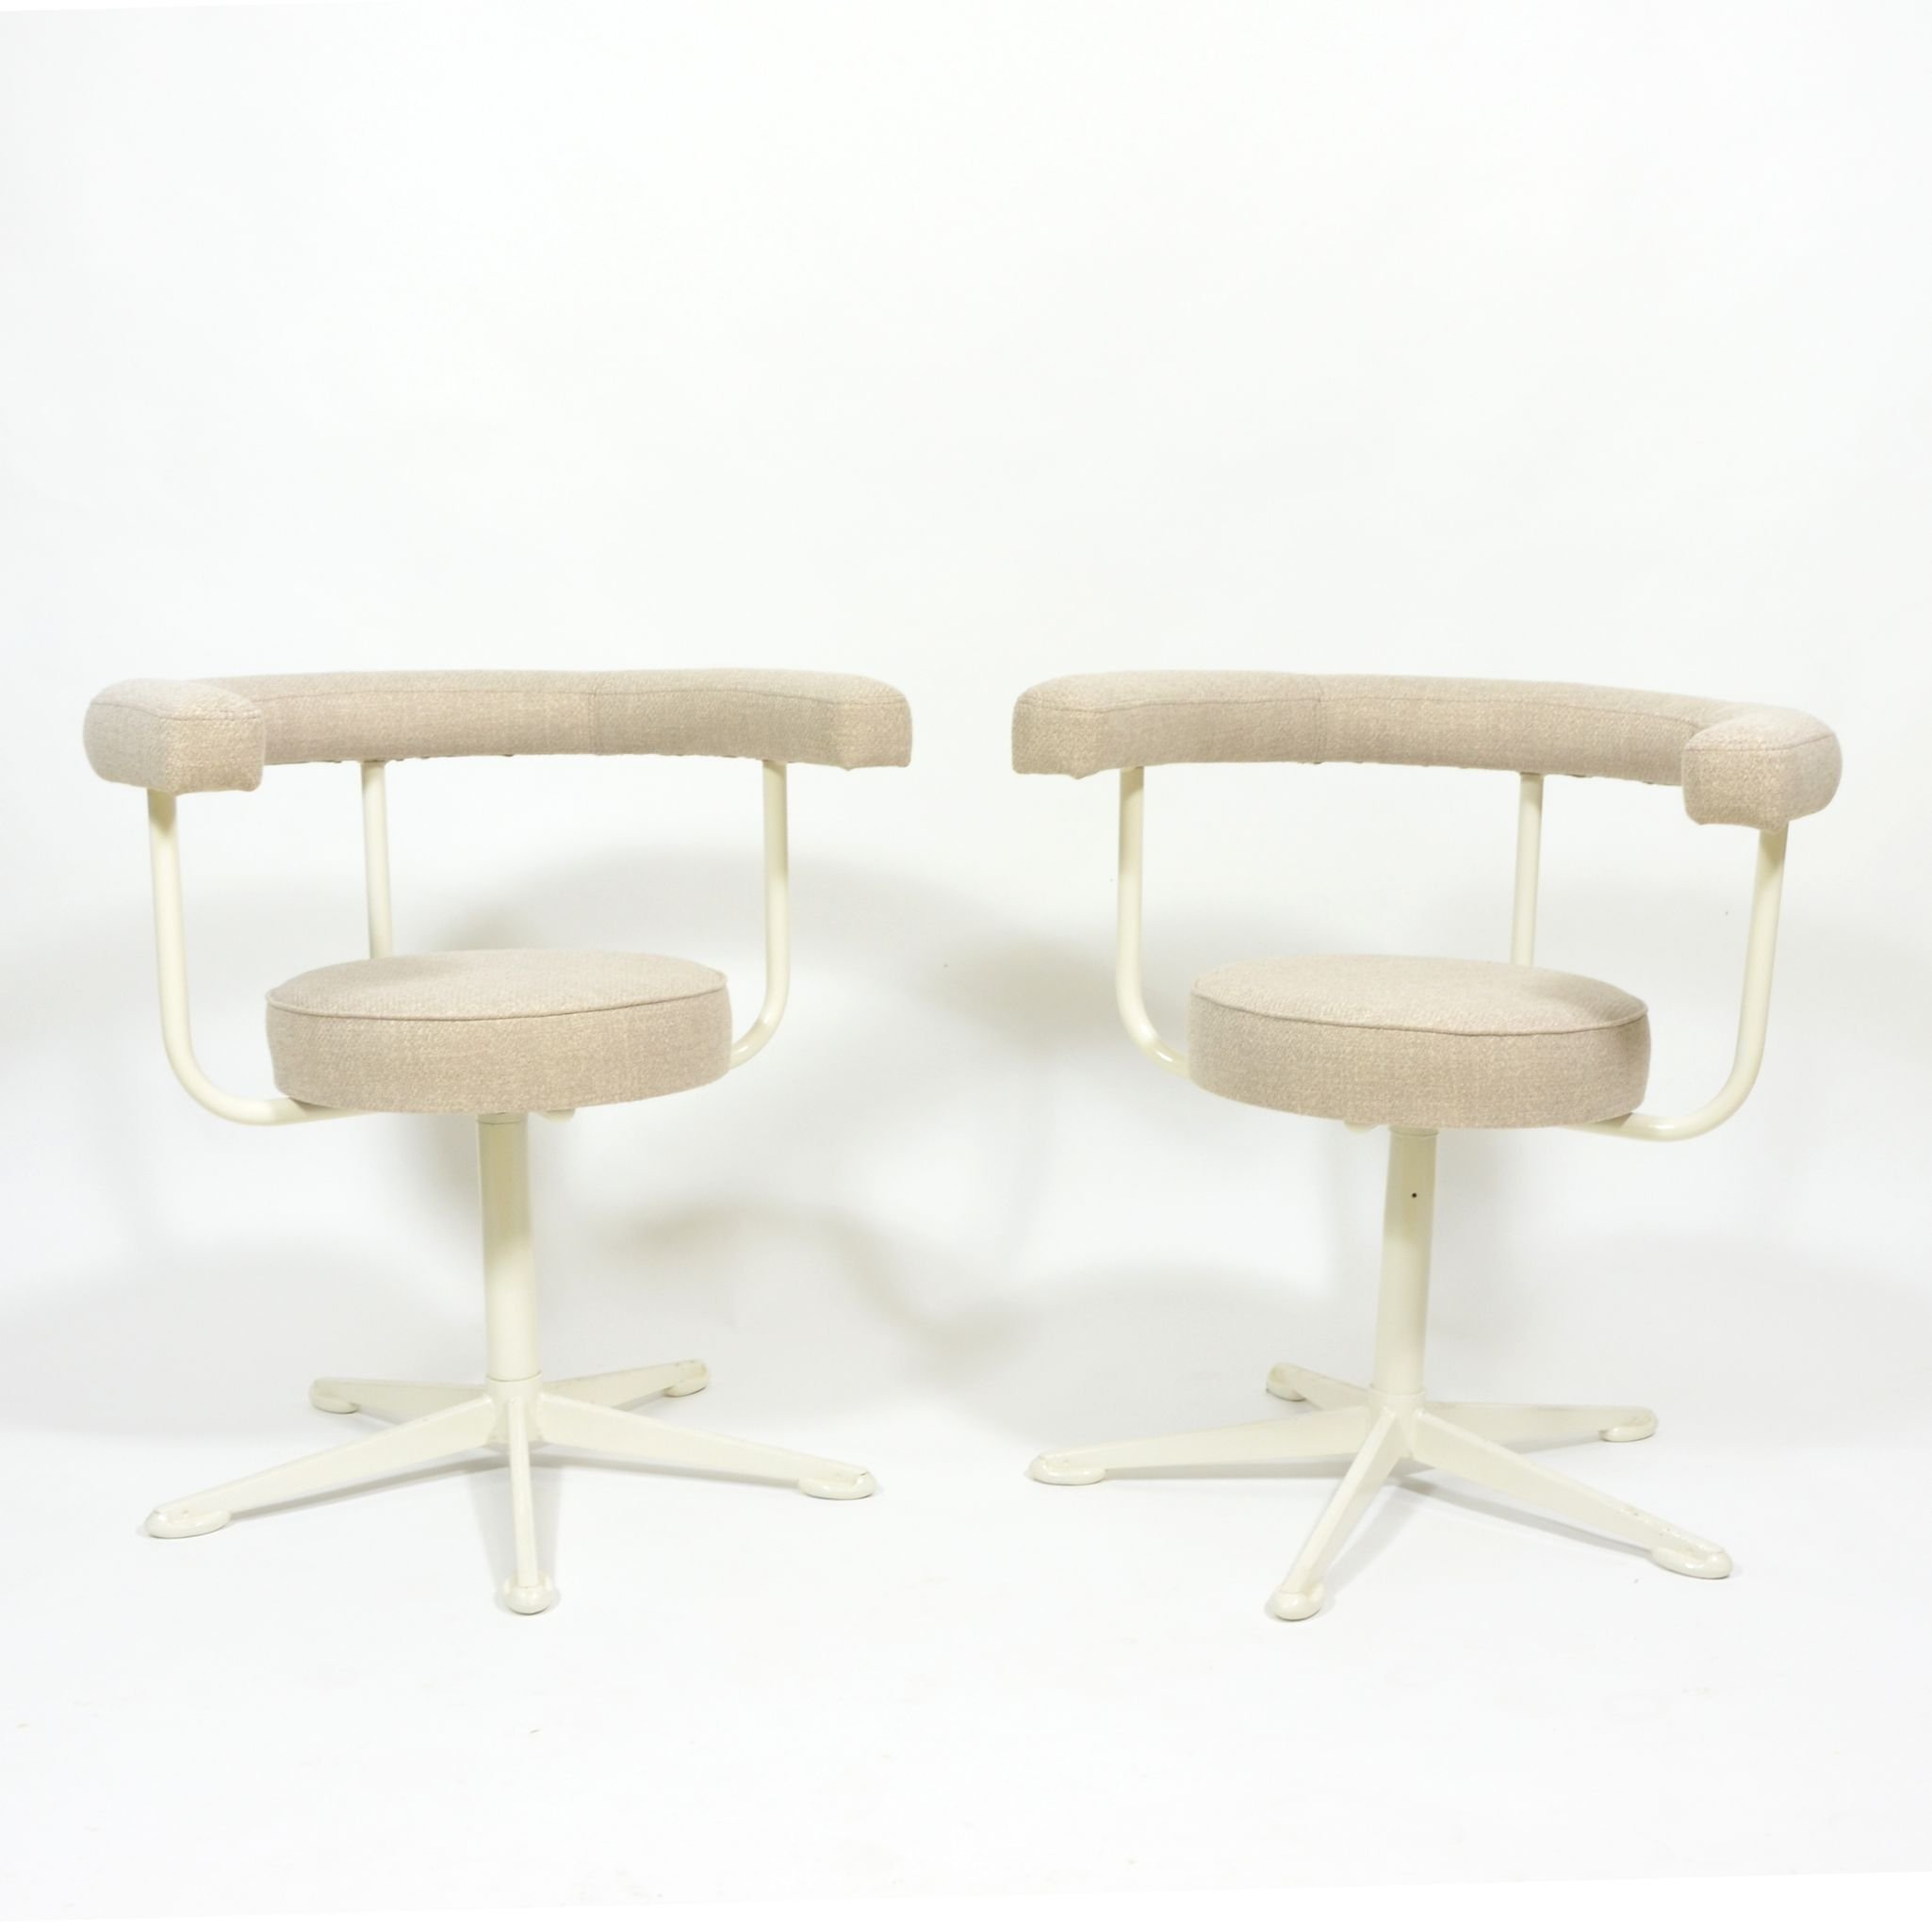 Marvelous Pair Of Swivel Chairs On Metal Leg 1970S Creativecarmelina Interior Chair Design Creativecarmelinacom